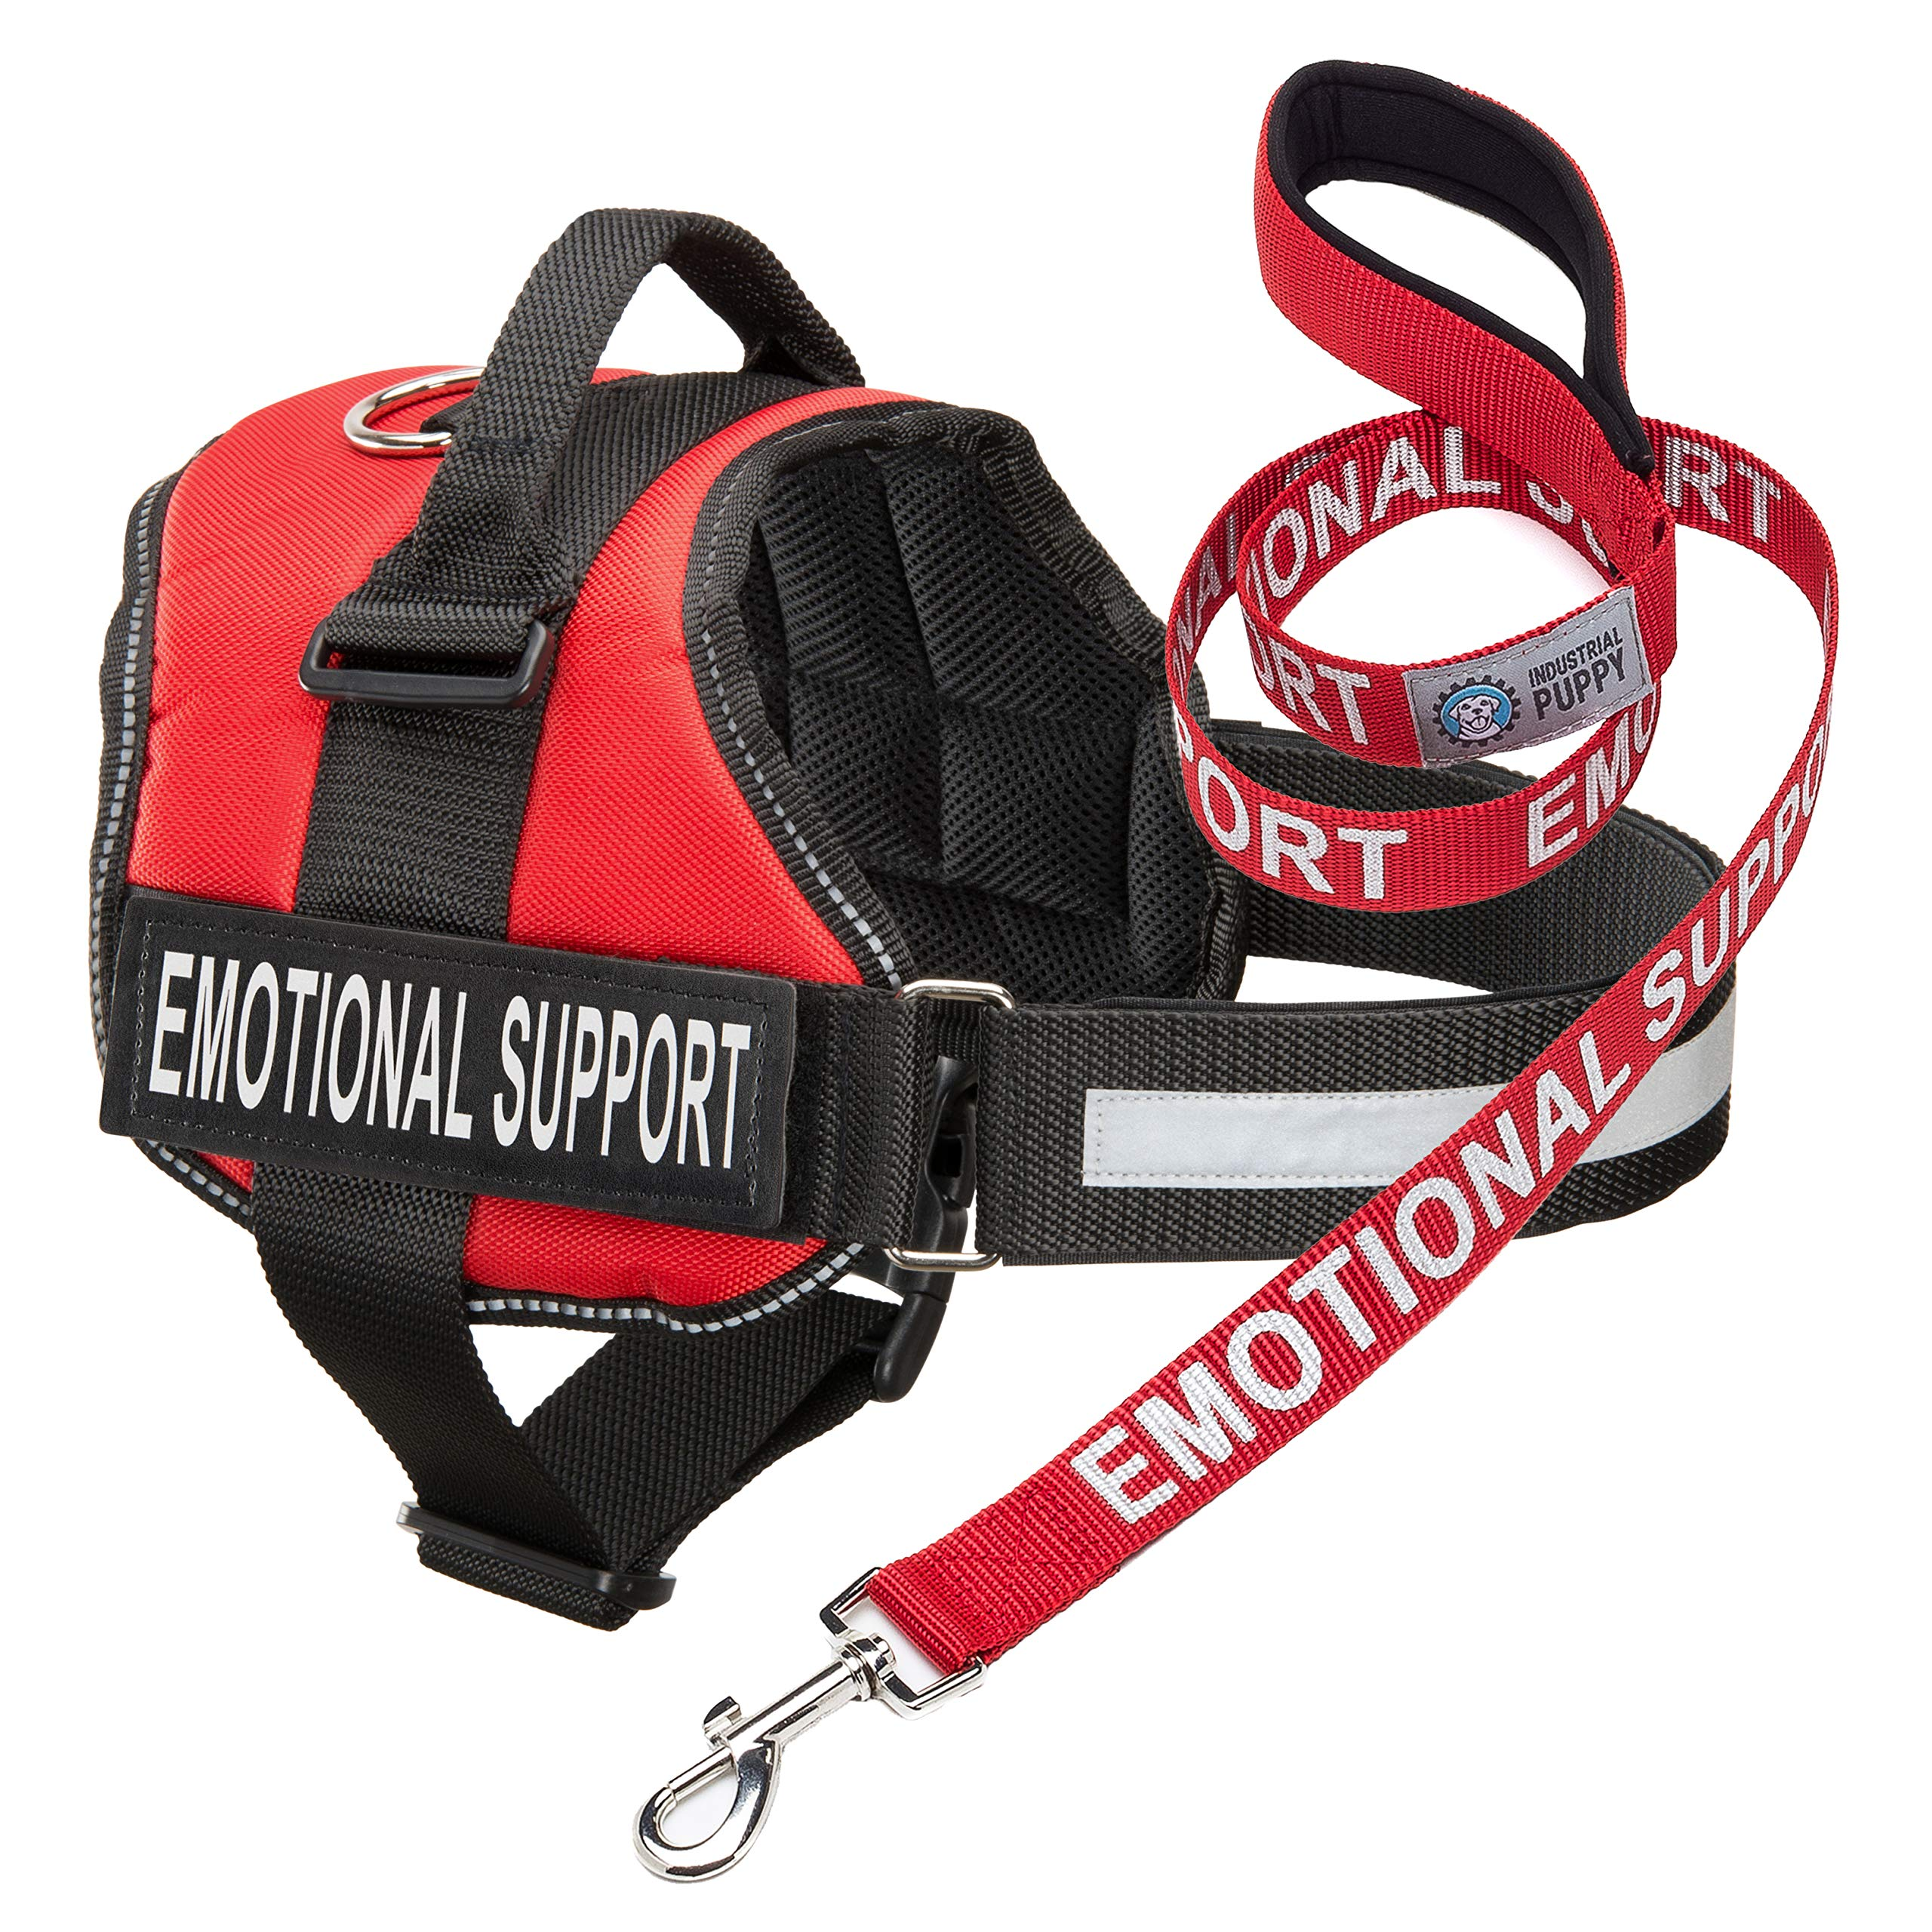 Industrial Puppy Emotional Support Dog Vest Harness with Reflective Straps, Patches, and Matching ESA Leash Set - ESA Dog Vest in 8 Sizes - Heavy Duty Vest for Working or in Training Dogs (Red, XS) by Industrial Puppy